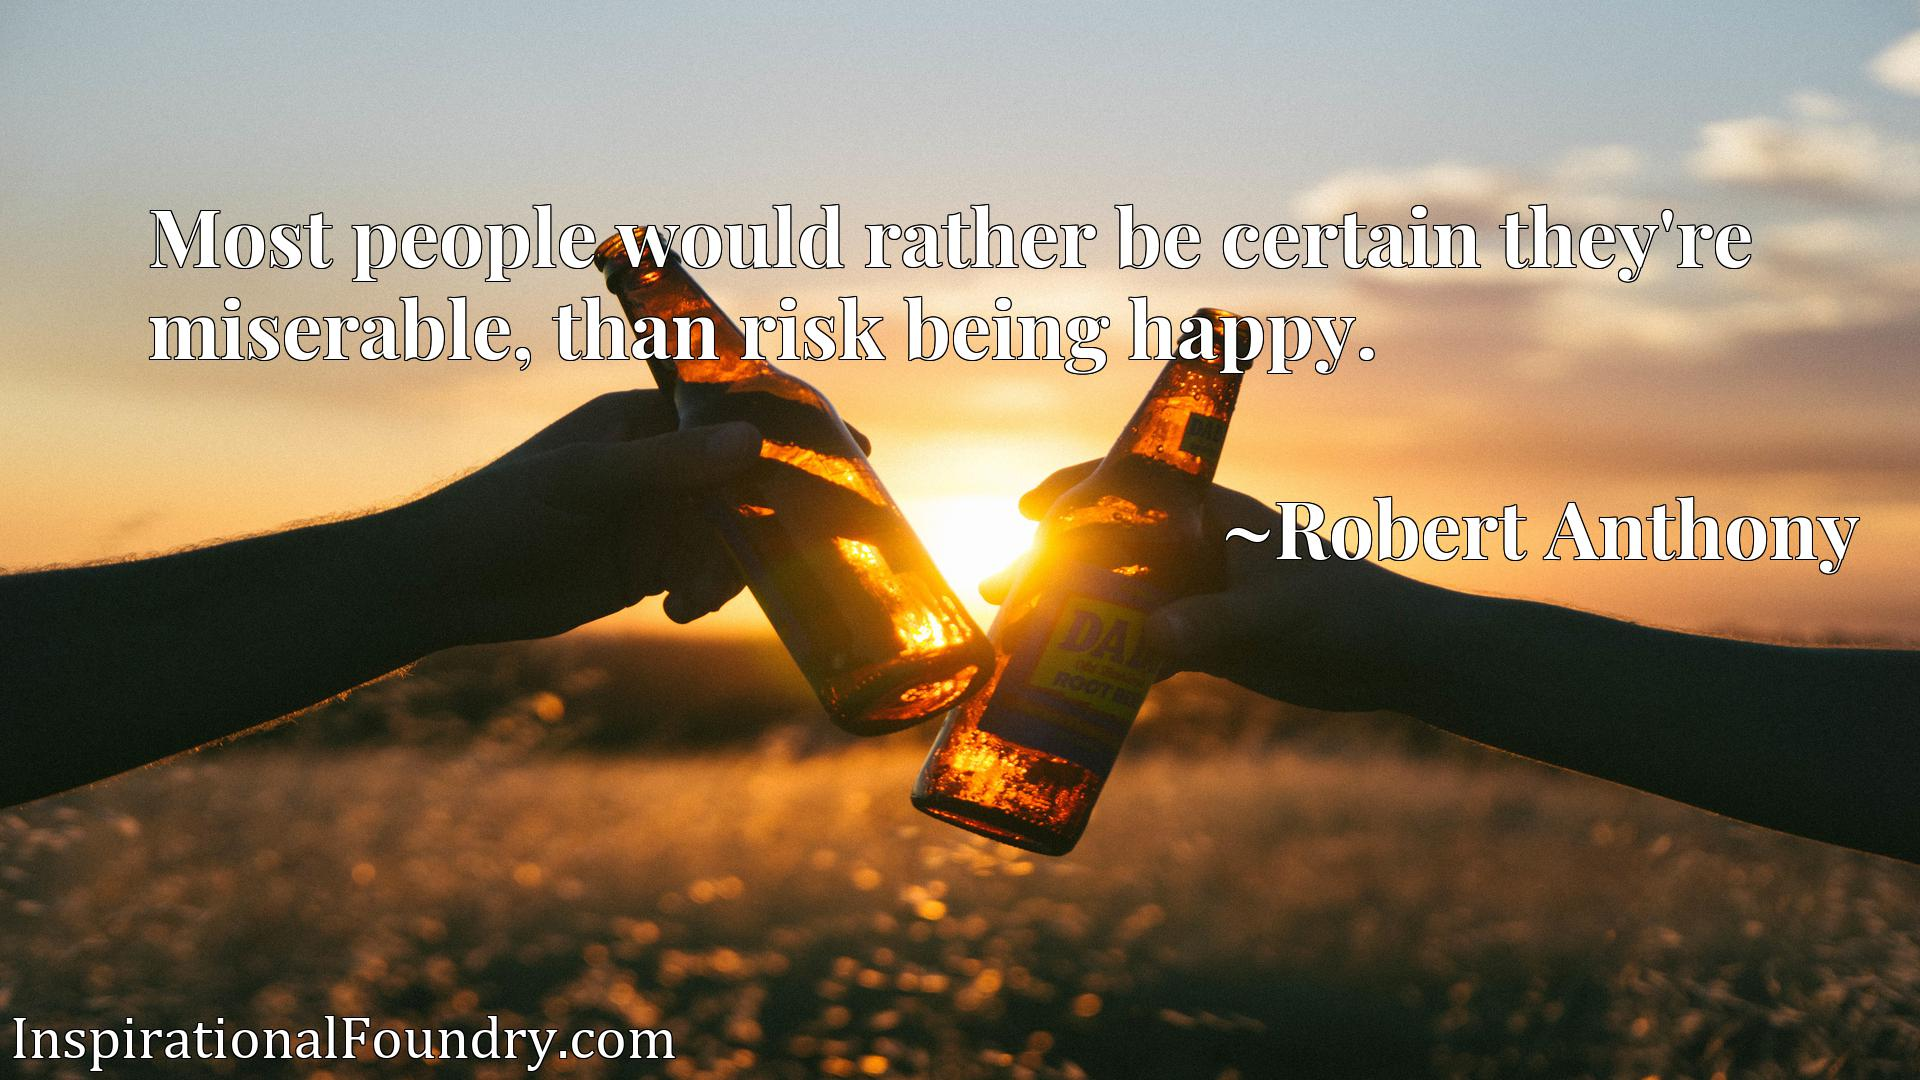 Quote Picture :Most people would rather be certain they're miserable, than risk being happy.